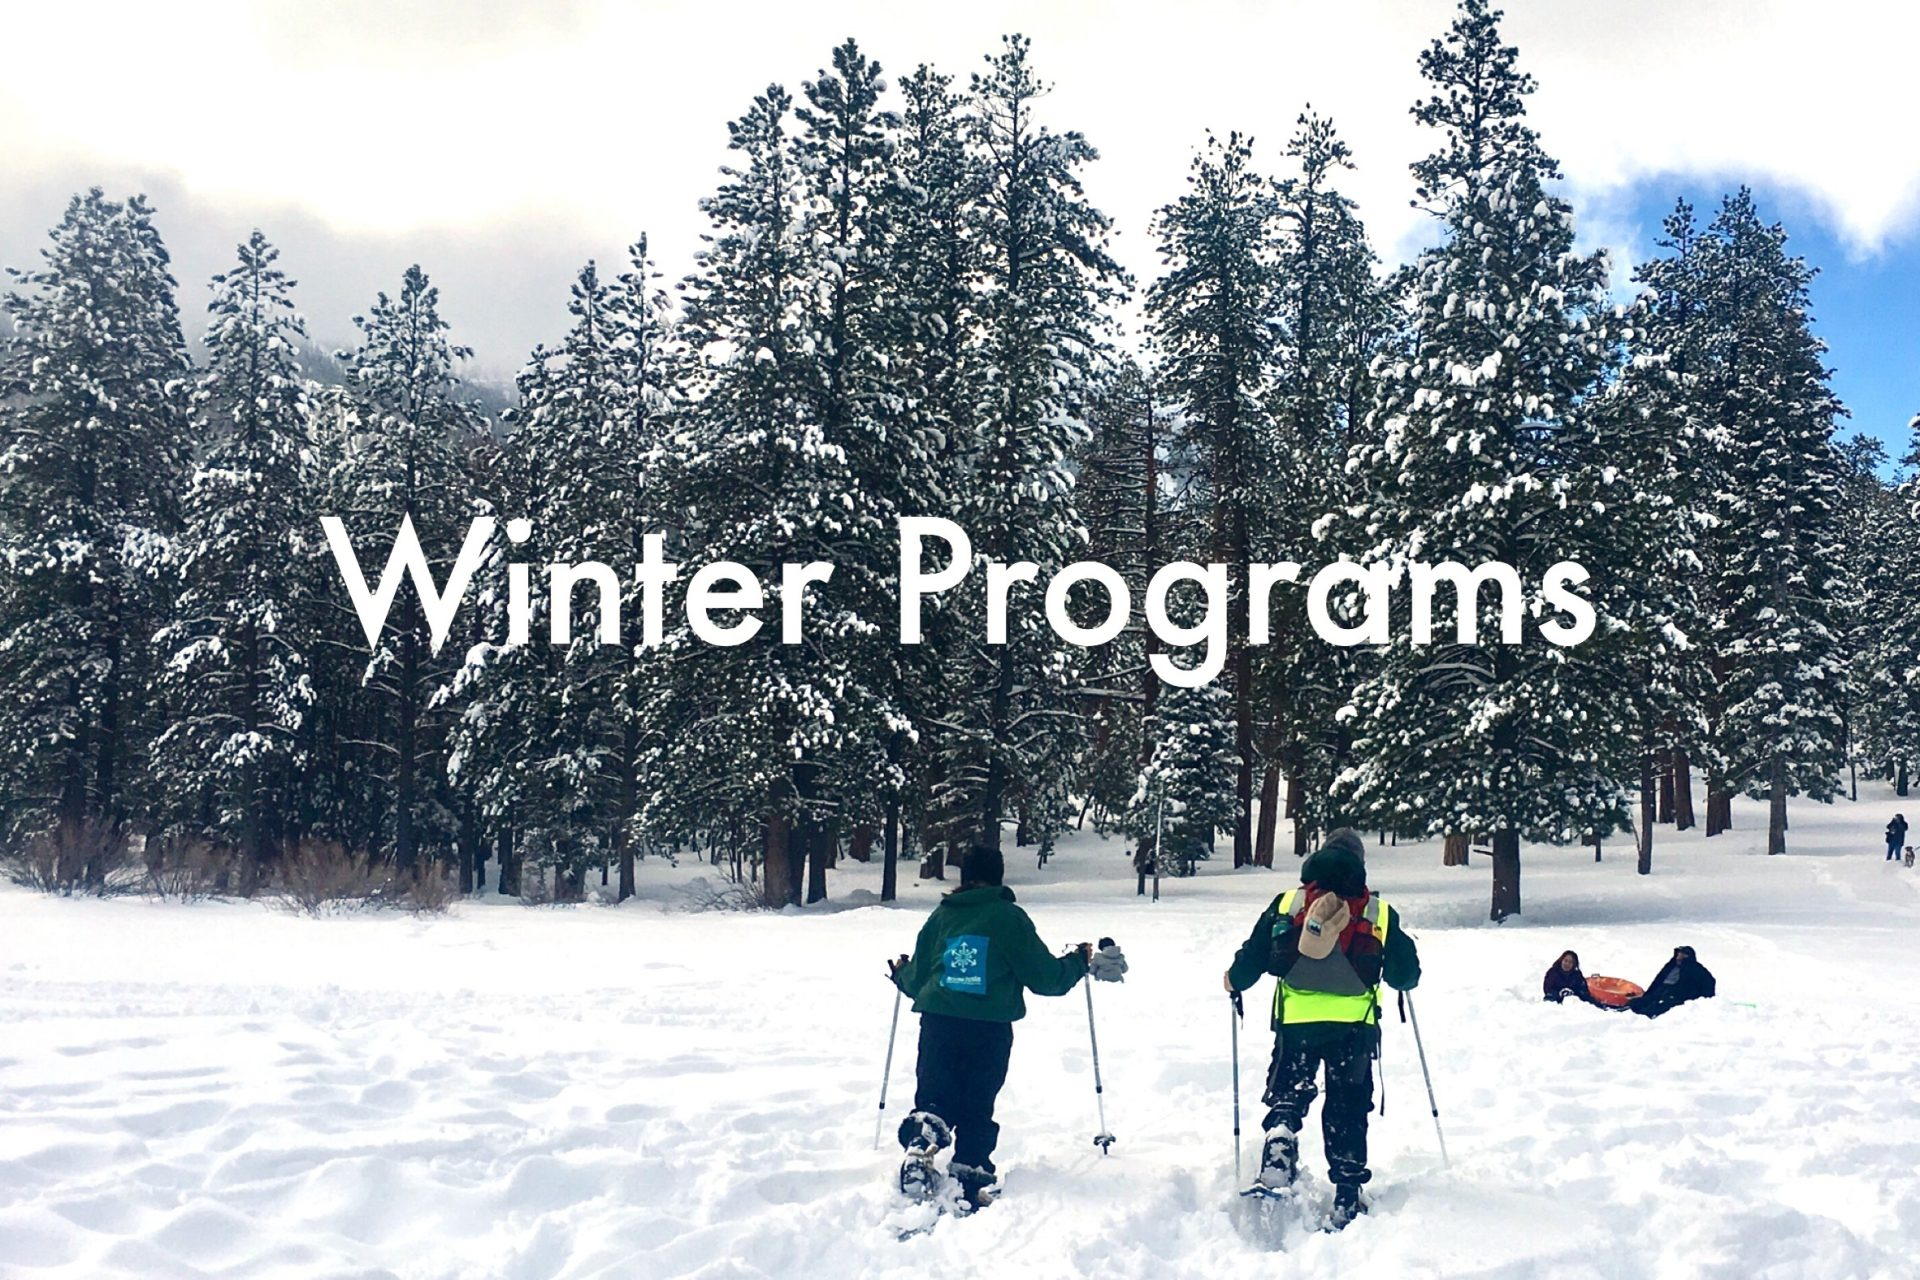 Winter activities include snowshoe hikes